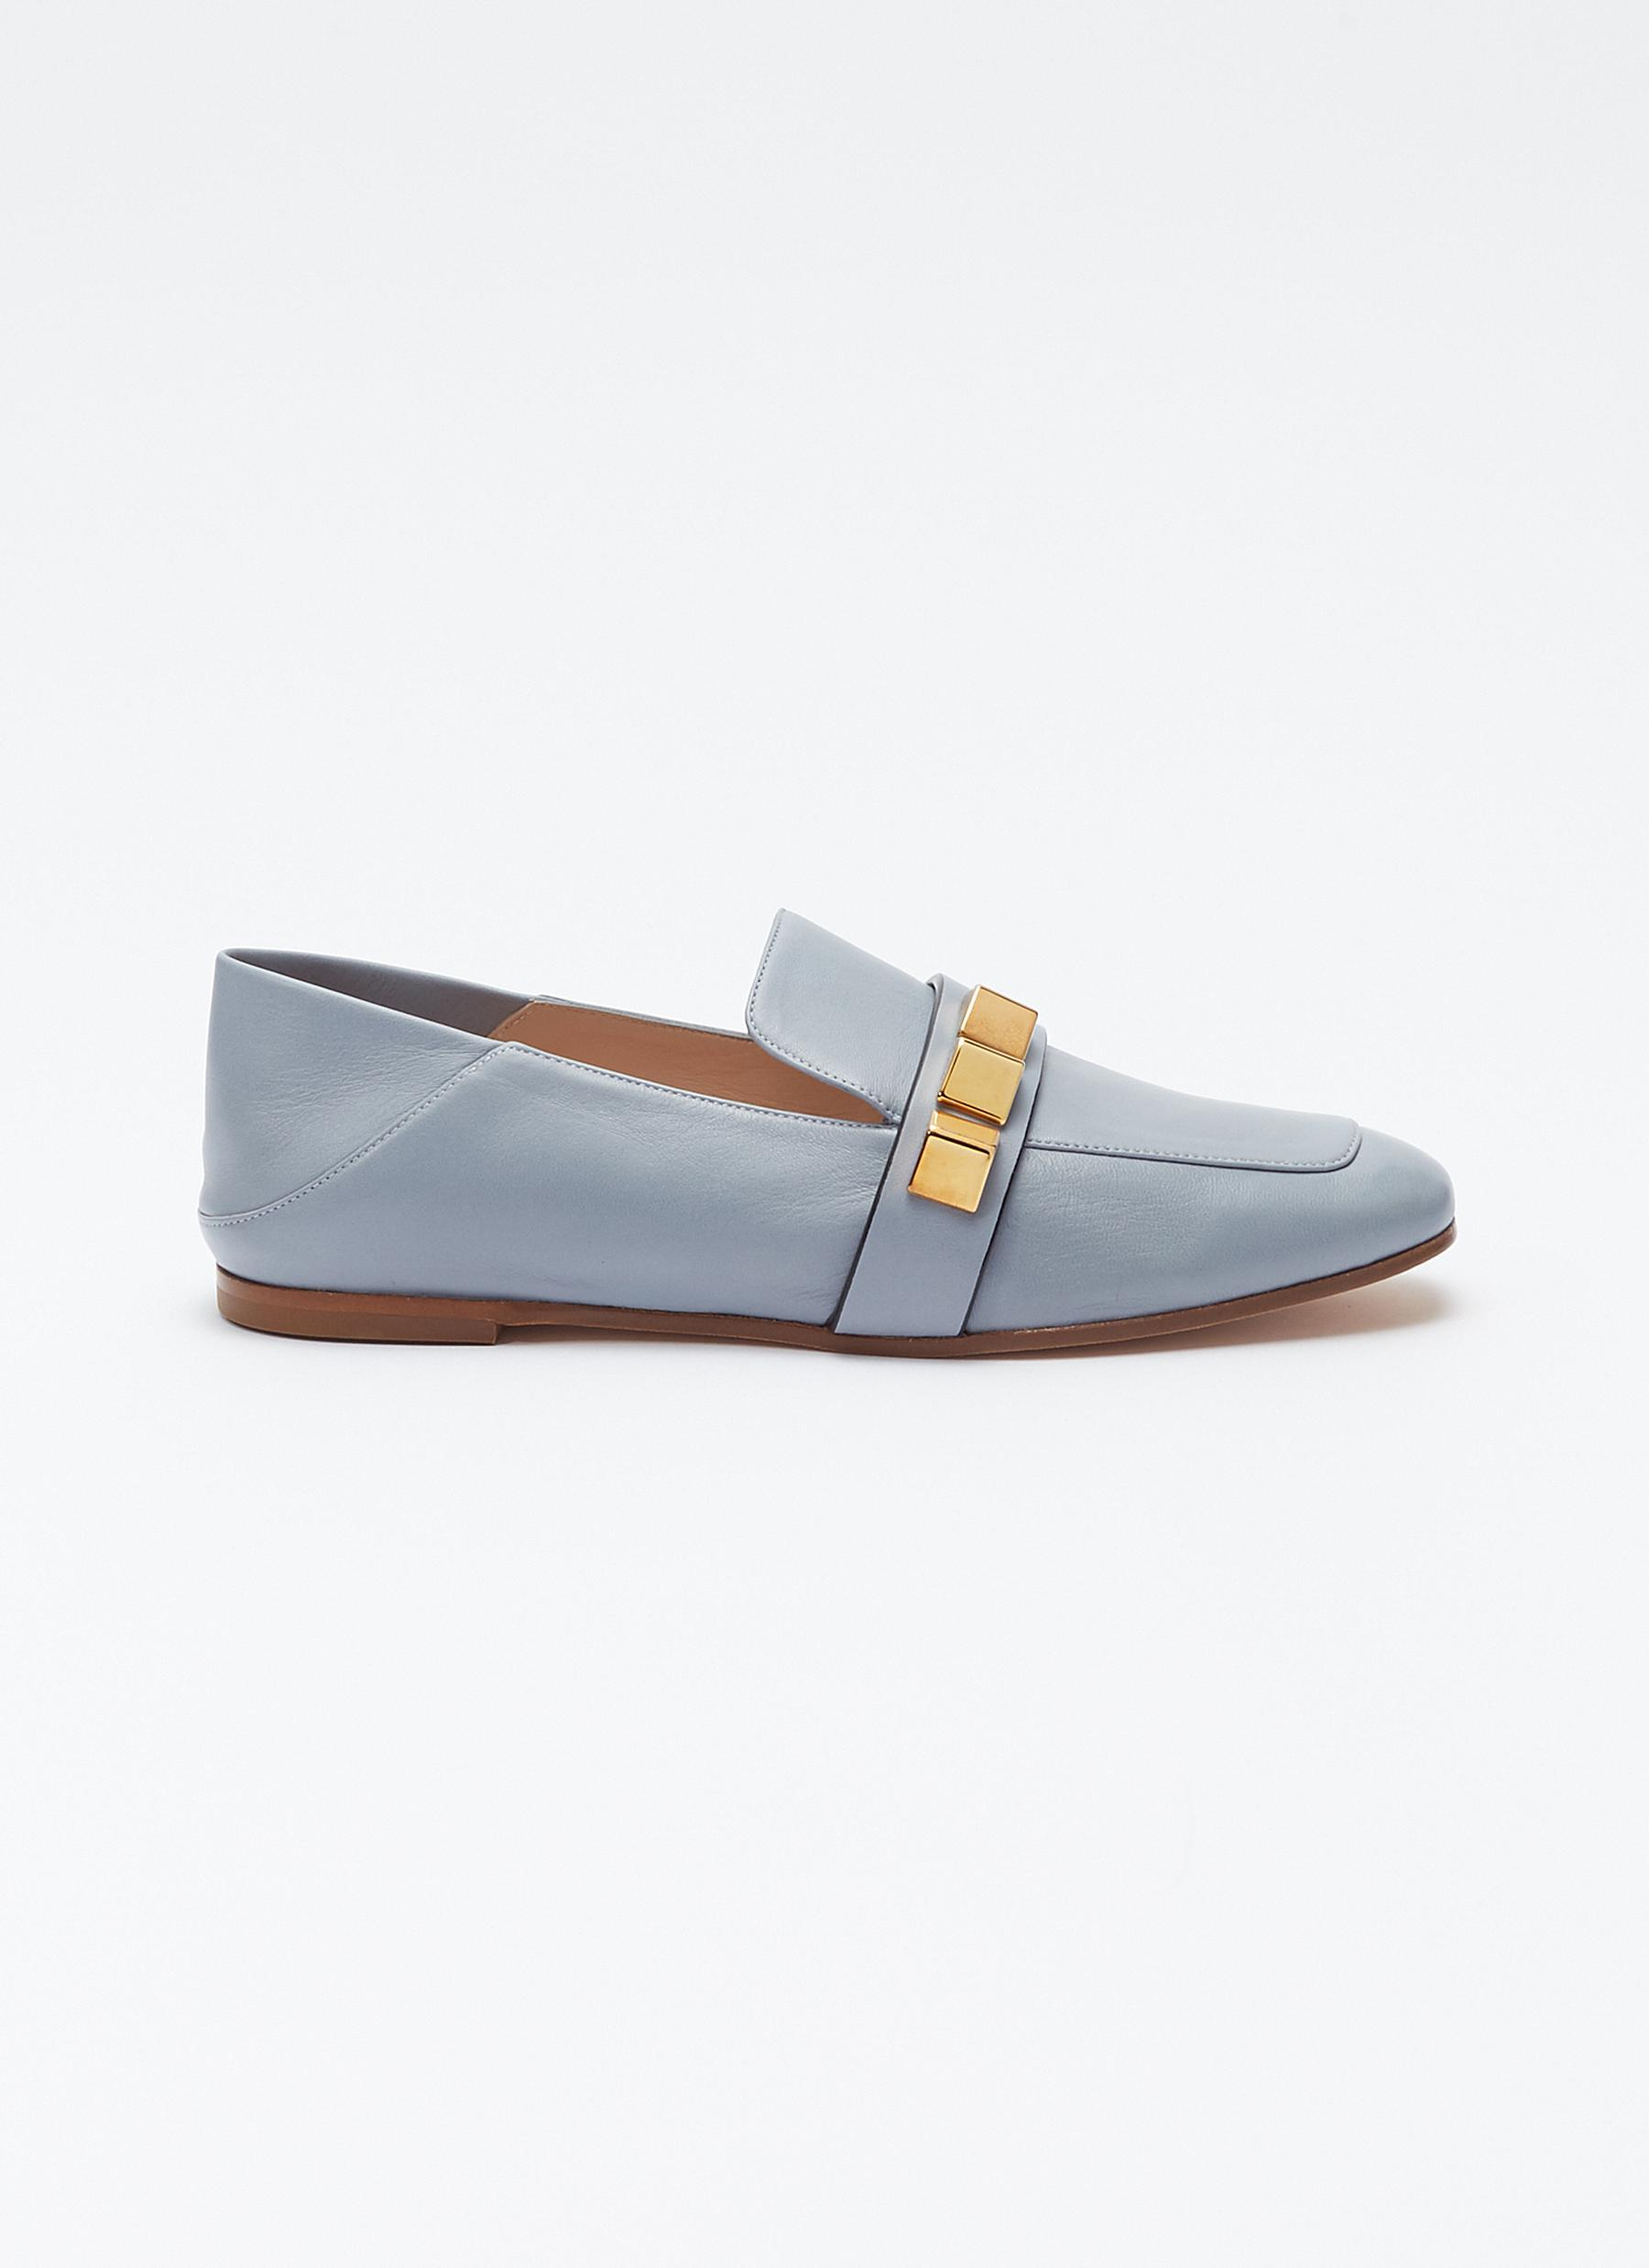 Loafers Blue Pyramid' Leather In Stuart Stud Weitzman Step 'wylie VGSMLqUpjz